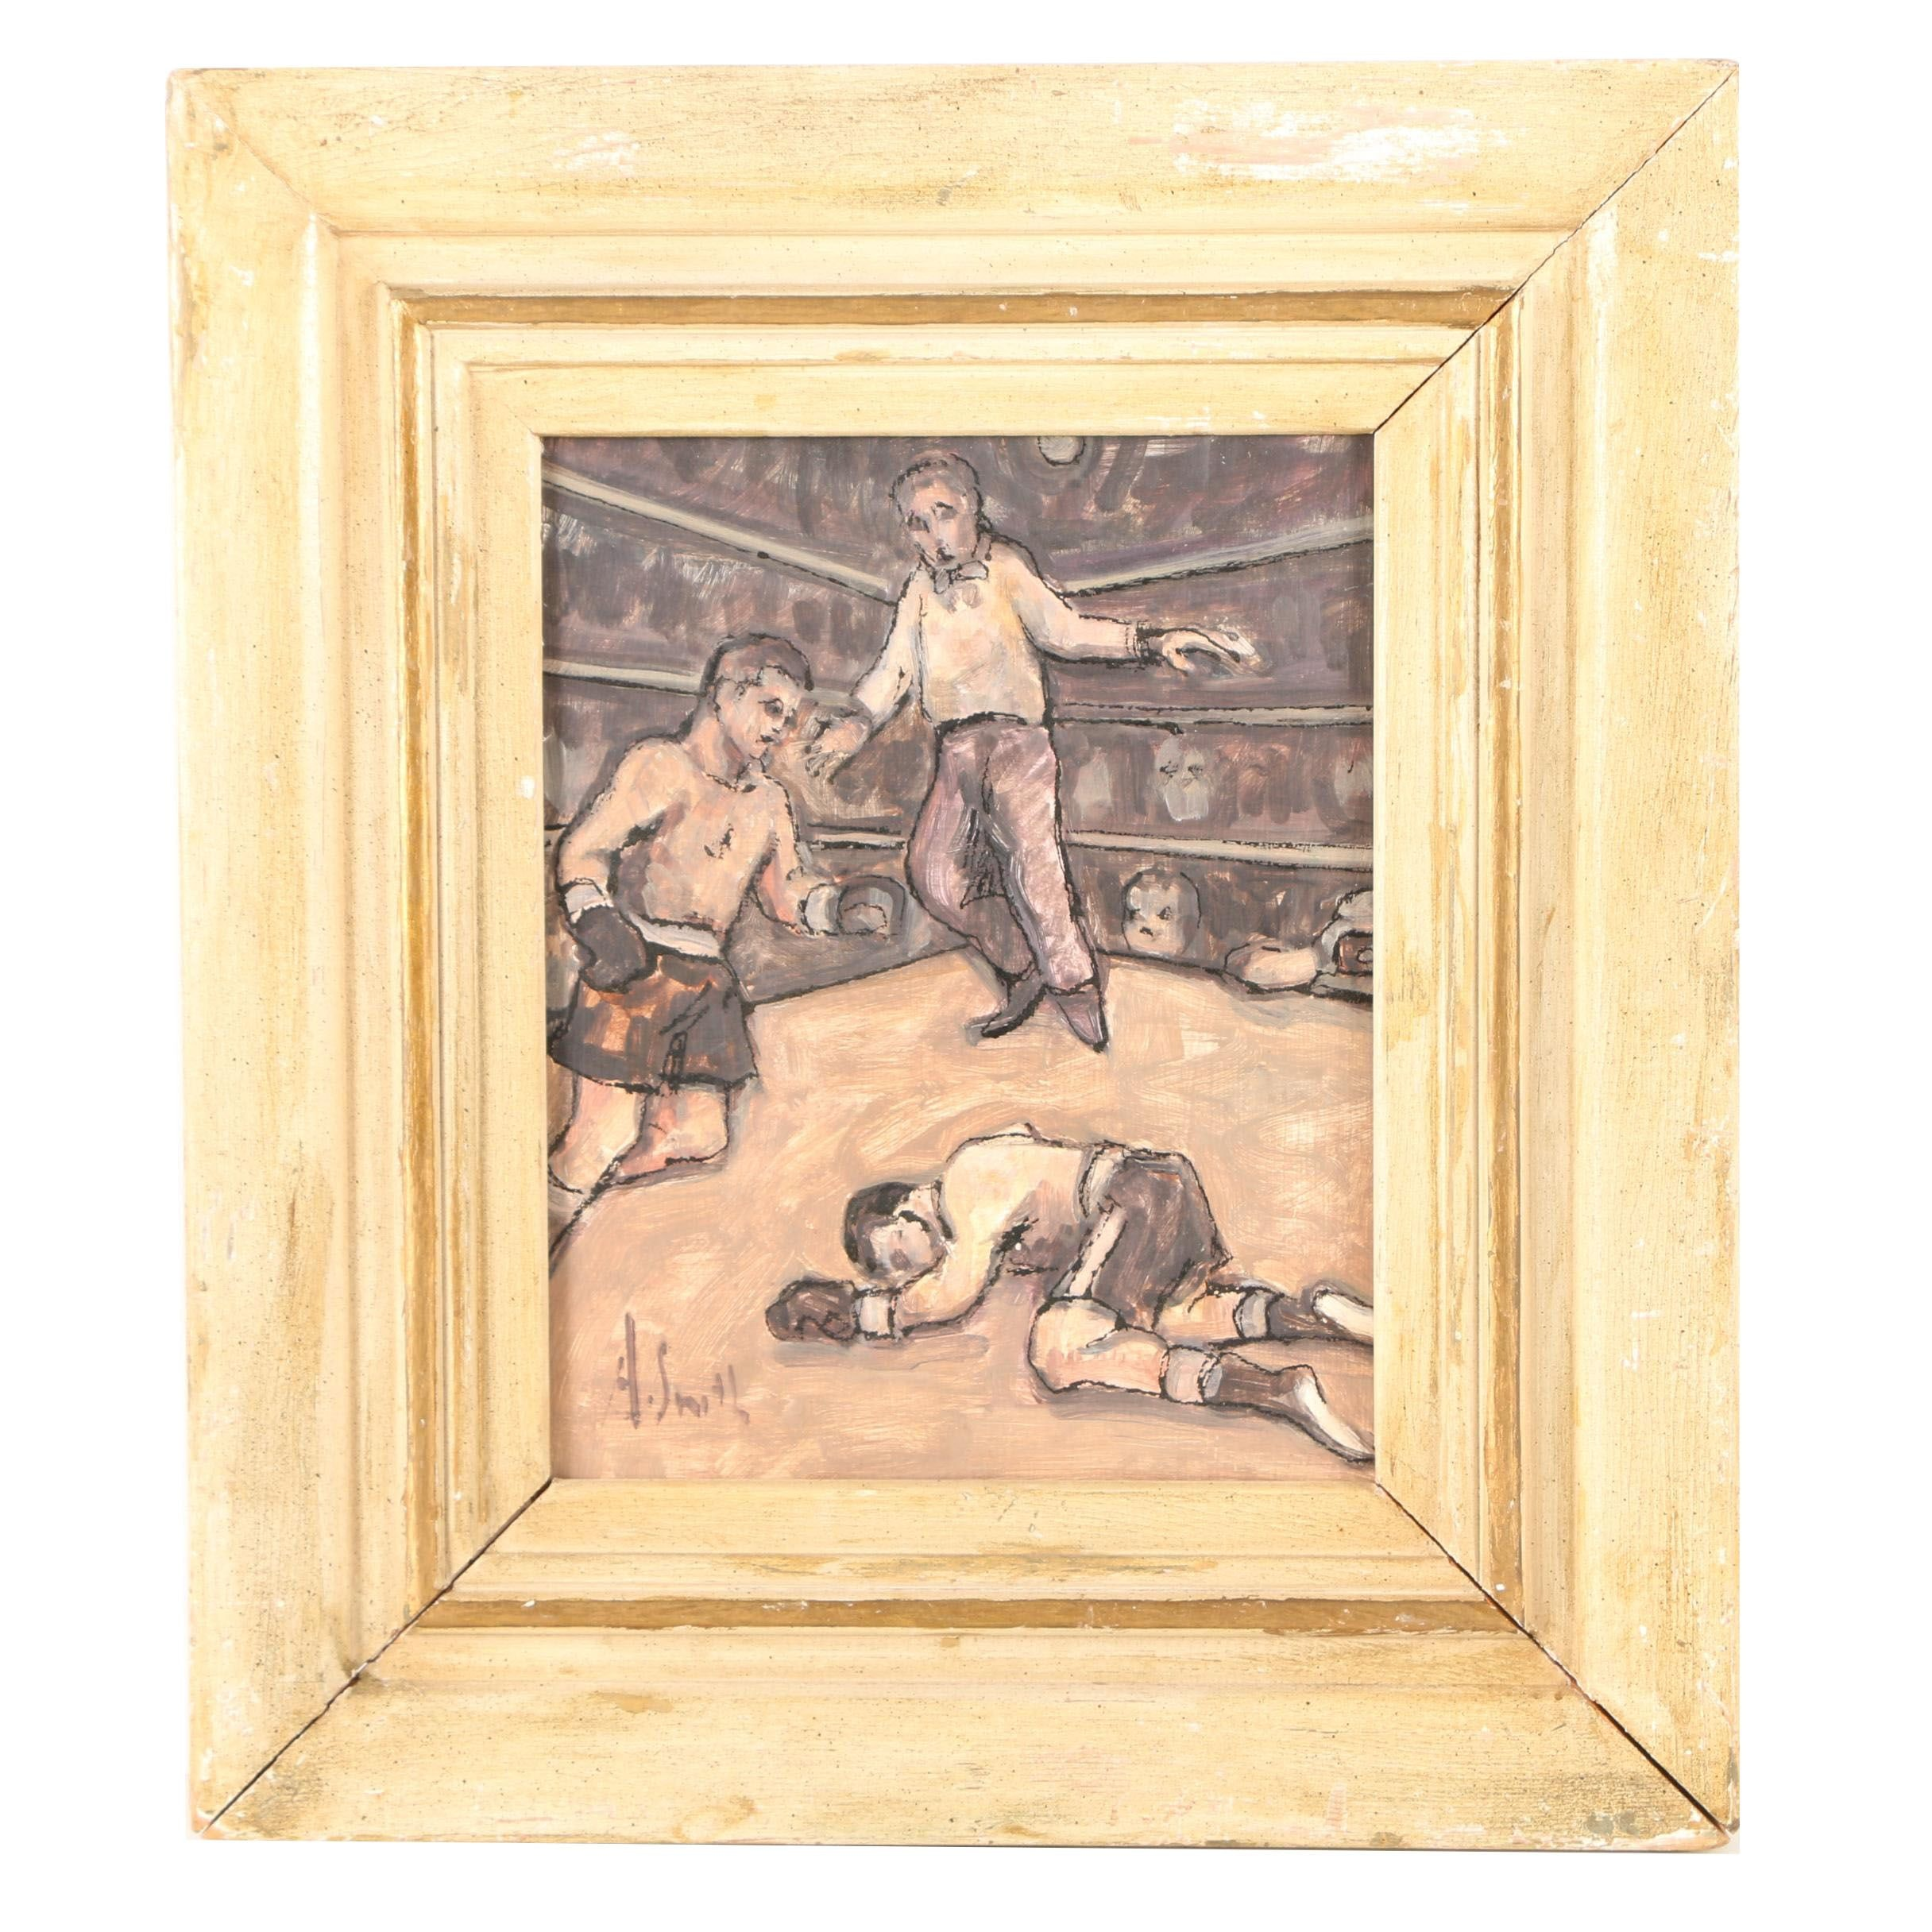 A. Smith Original Oil Painting on Panel of Boxing Match